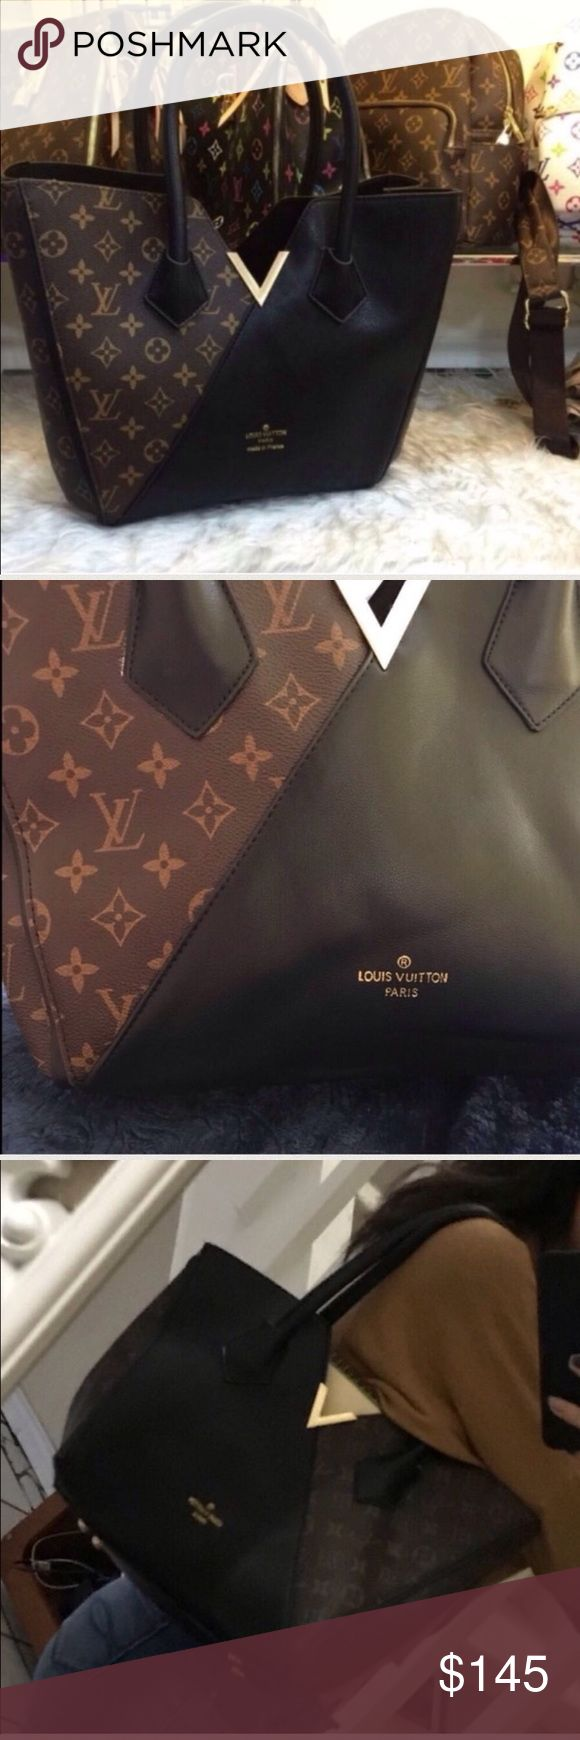 Louis Vuitton large purse accept reasonable offers.                                                          15.4 x 11.4 x 5.9 inches  (Length x Height x Width)  - Monogram canvas - 1 central zipped compartment - Transversal snap hook as closing system - Golden color metallic pieces - 4 bottom studs Louis Vuitton Bags Satchels